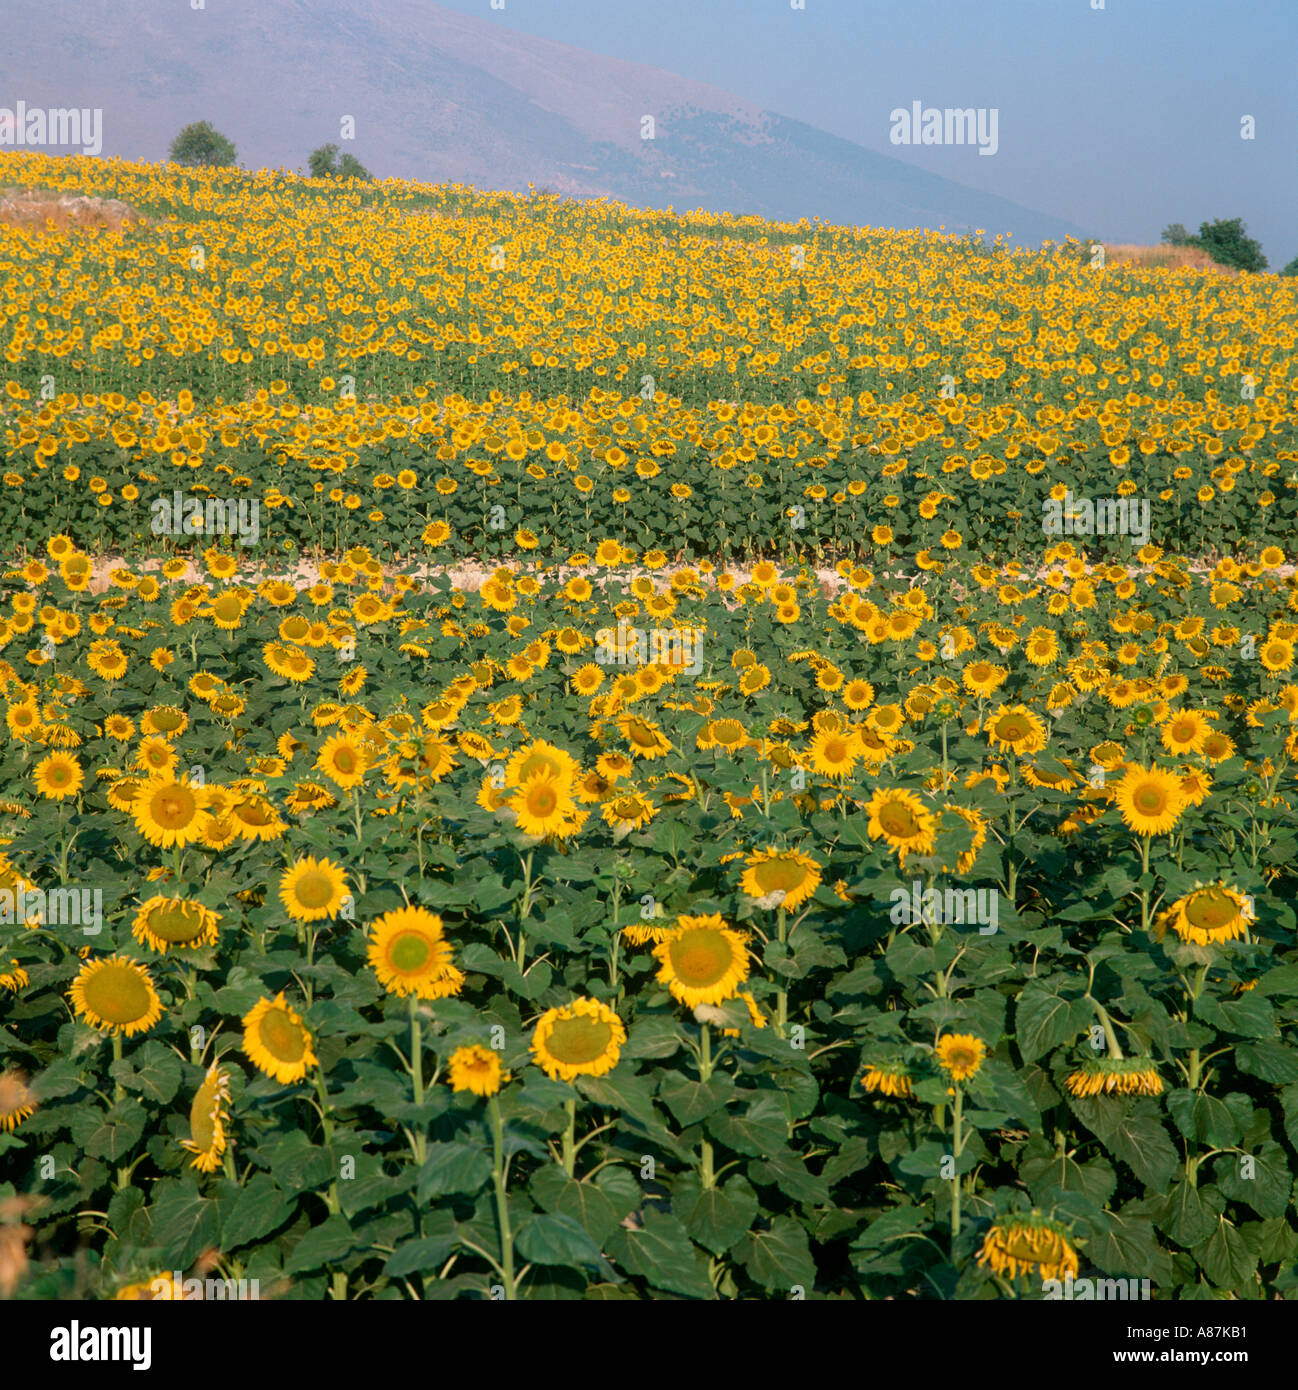 Field of sunflowers (Helianthus annuus), Andalucia, Spain - Stock Image